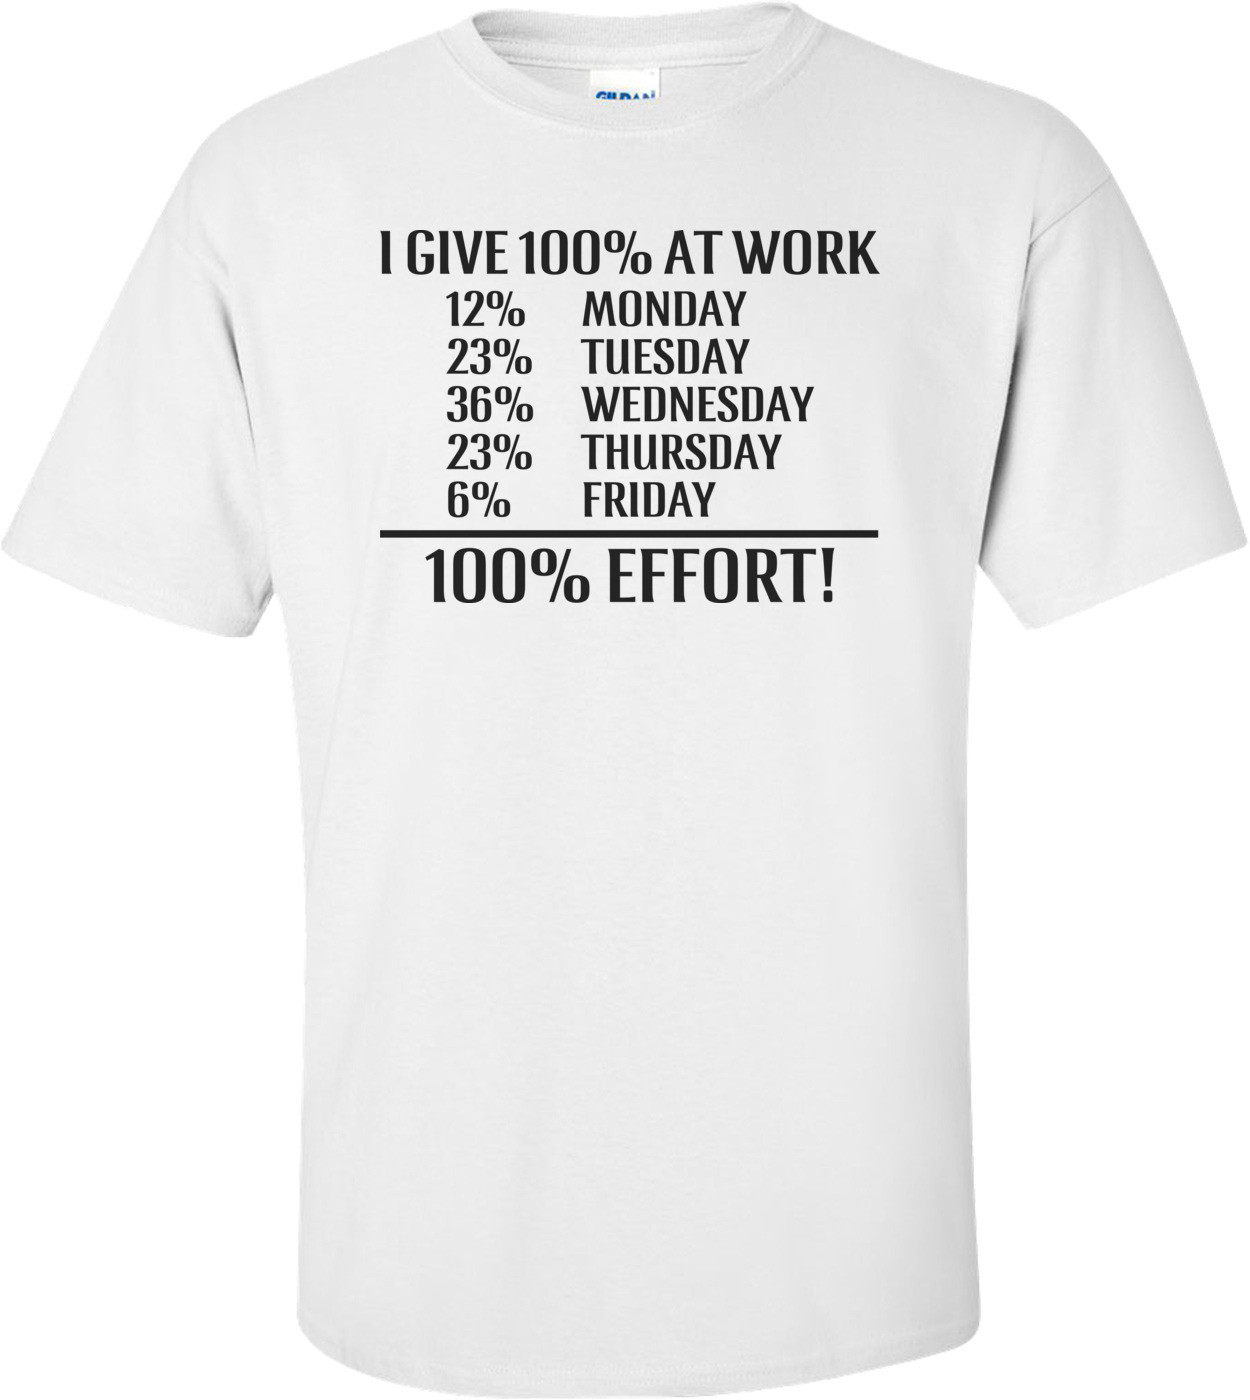 I Give 100% At Work Shirt